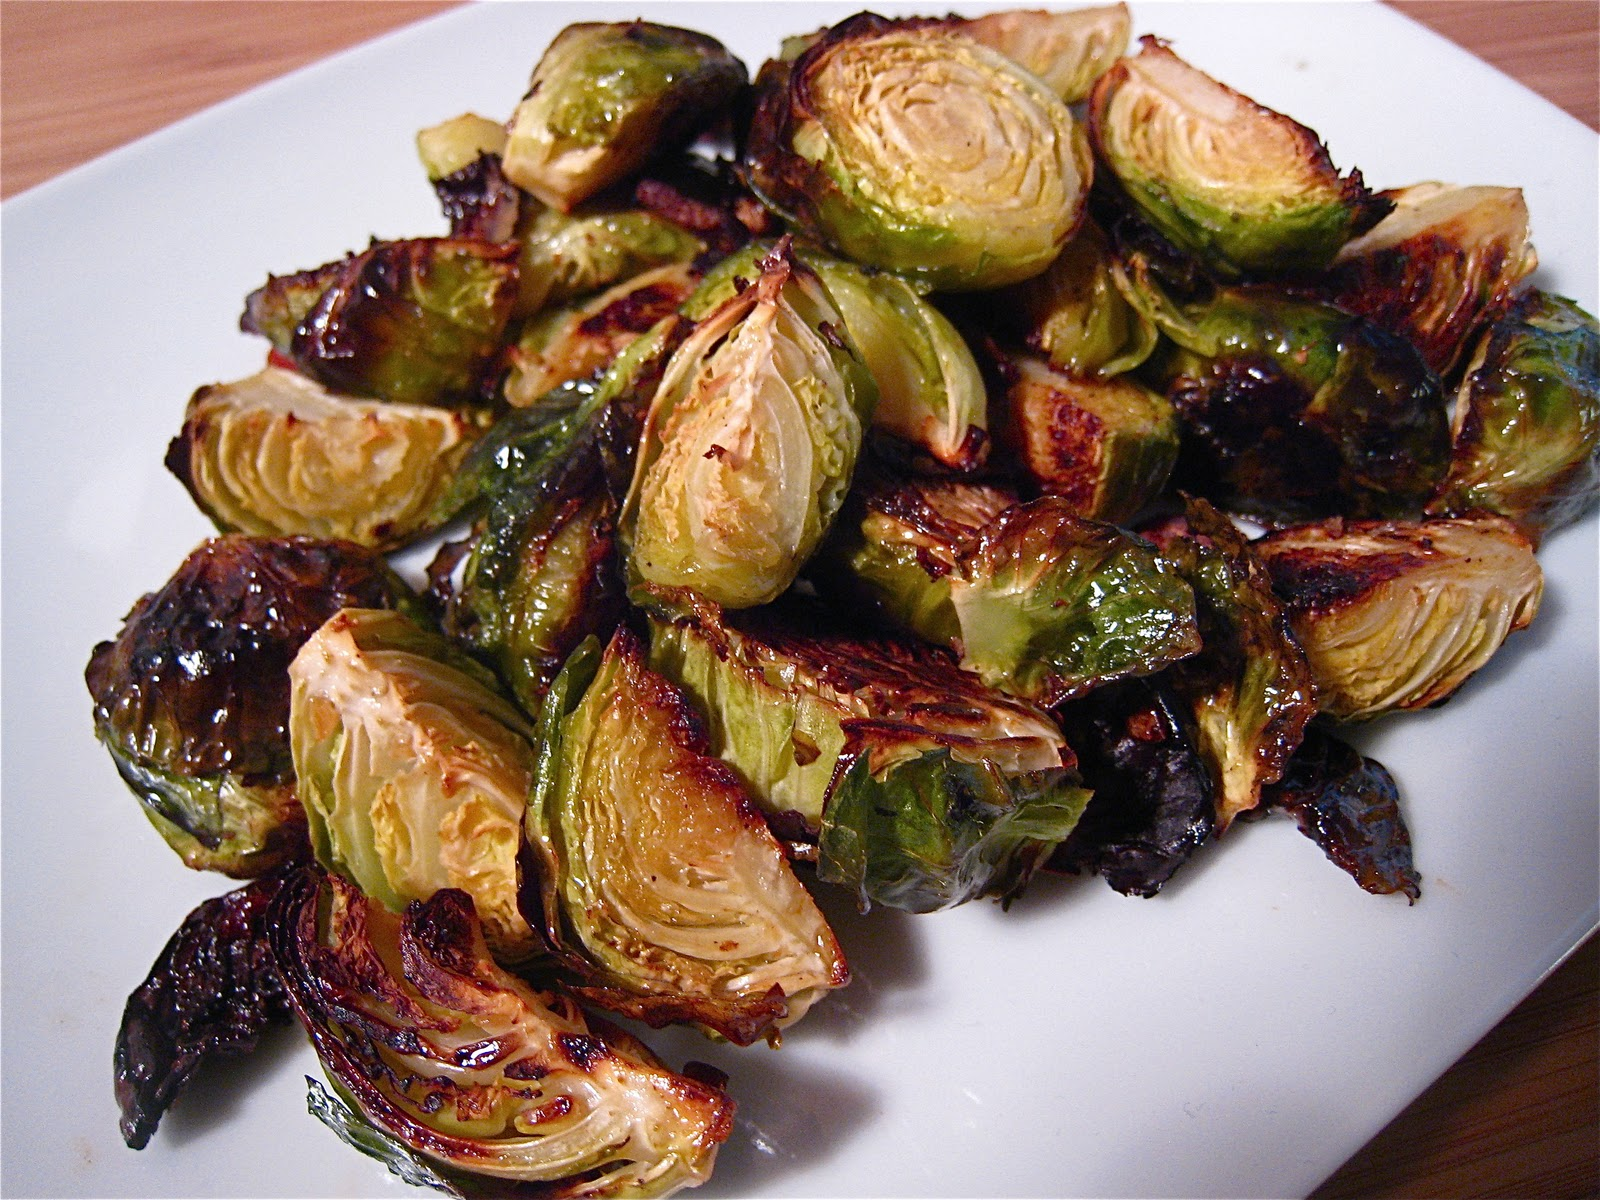 KITCHEN FIDDLER : Roasted Brussels Sprouts With Bacon And Garlic